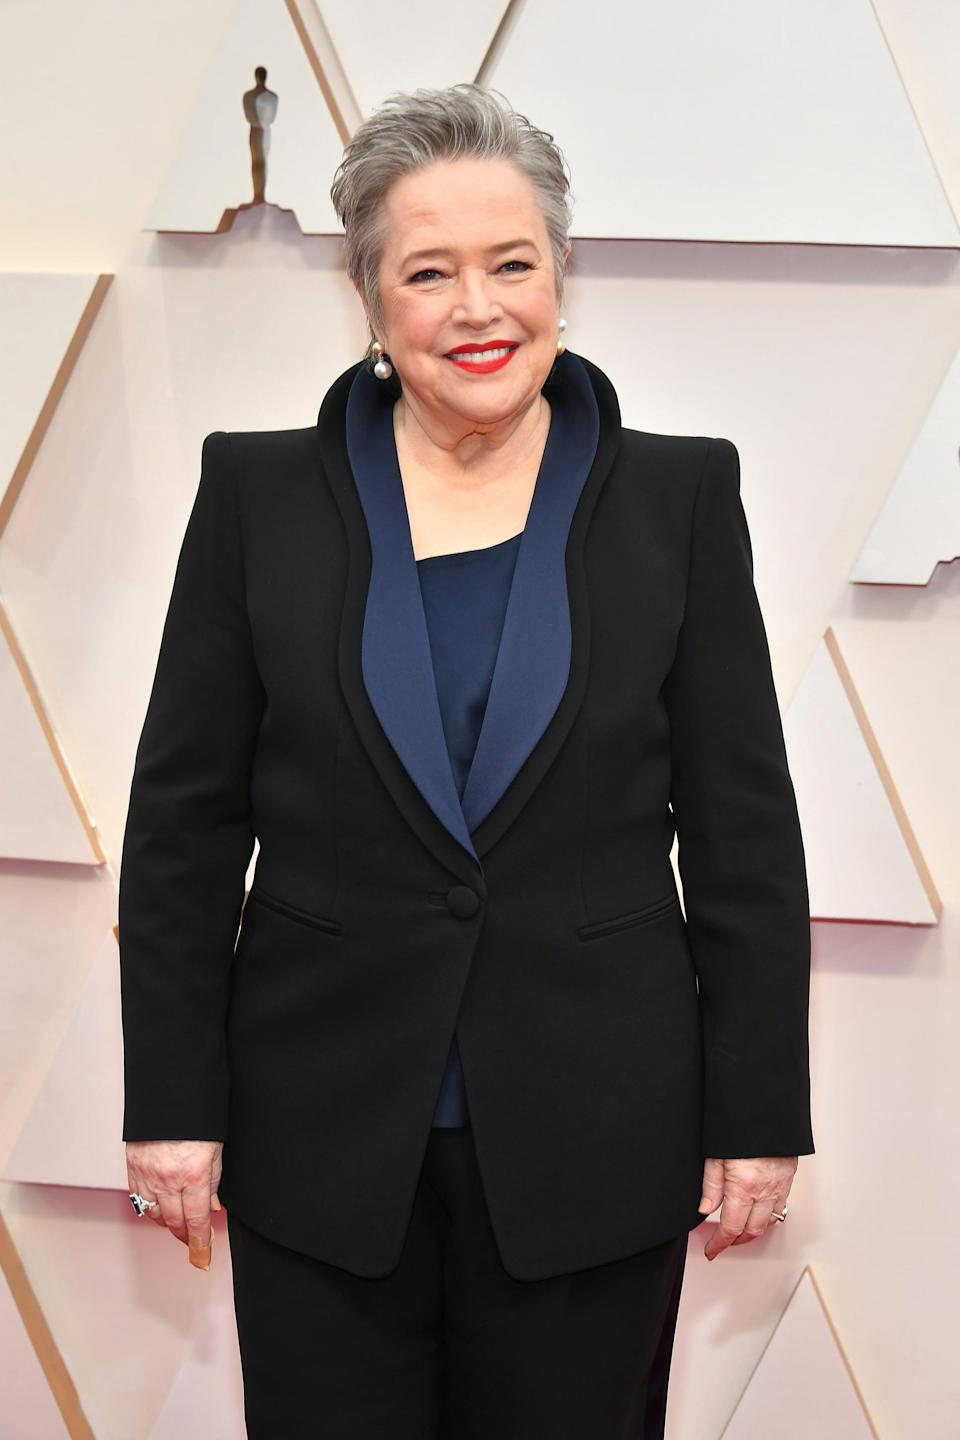 "<p>The Oscar, Emmy, and Golden Globe winner will be playing Sylvia Simon, Margaret's Jewish paternal grandmother who takes her to synagogue and supports her through her quest to figure out her beliefs. Most recently, Bates was seen in the 2019 drama <strong>Richard Jewell</strong>, and her next project is as different from <strong>Are You There God? It's Me, Margaret</strong> as it gets: she's returning to the <strong><a class=""link rapid-noclick-resp"" href=""https://www.popsugar.com/American-Horror-Story"" rel=""nofollow noopener"" target=""_blank"" data-ylk=""slk:American Horror Story"">American Horror Story</a></strong> universe for the upcoming tenth season.</p>"